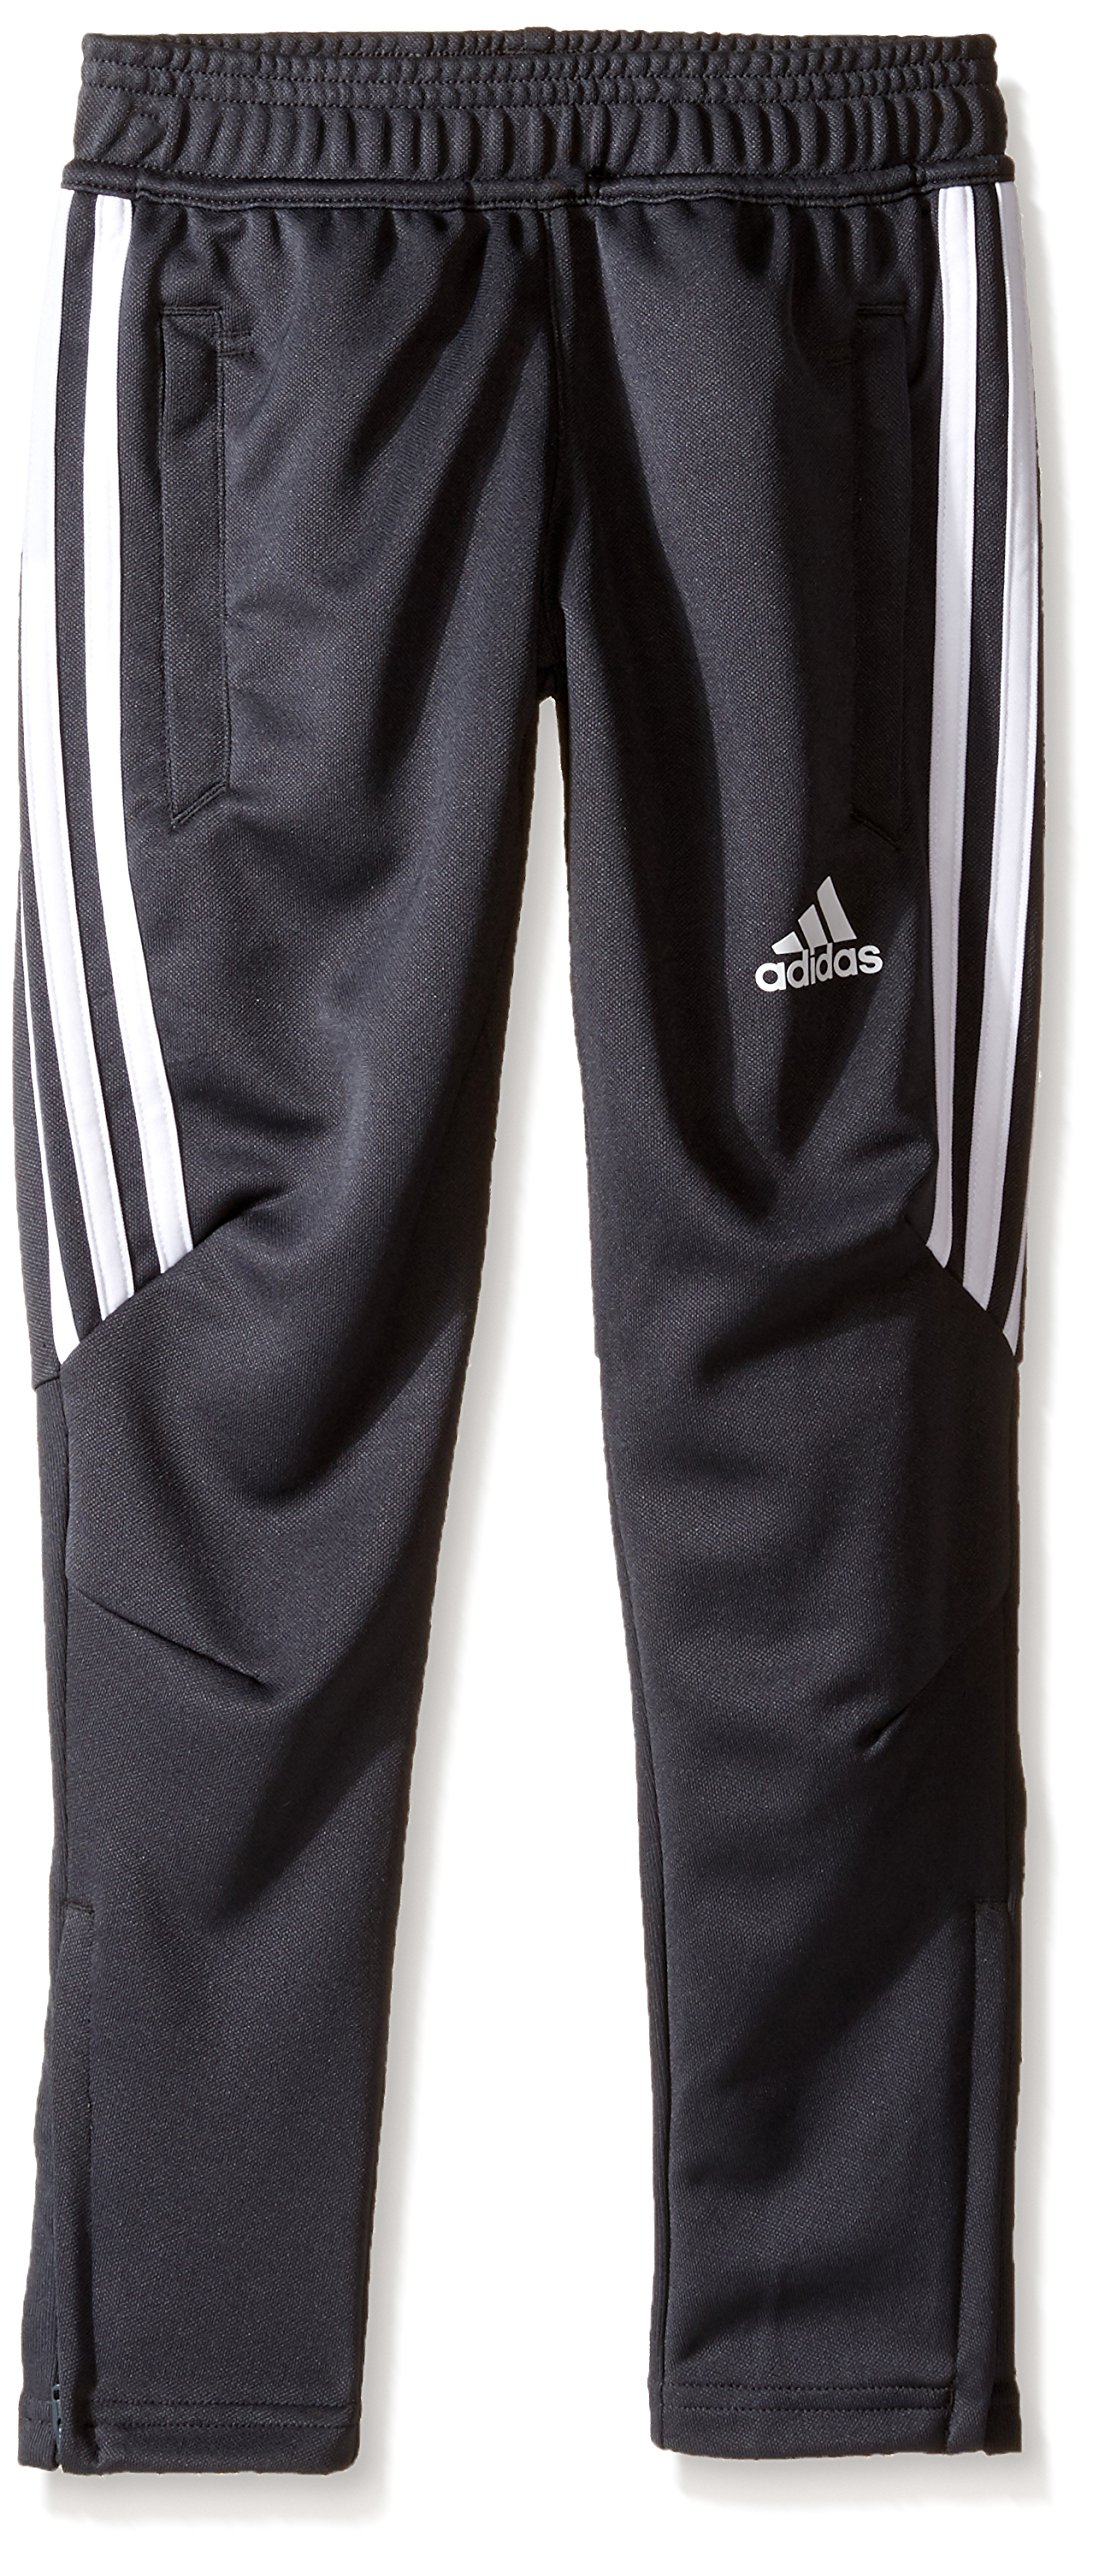 adidas Youth Soccer Tiro 17 Pants, Small - Dark Grey/White/White